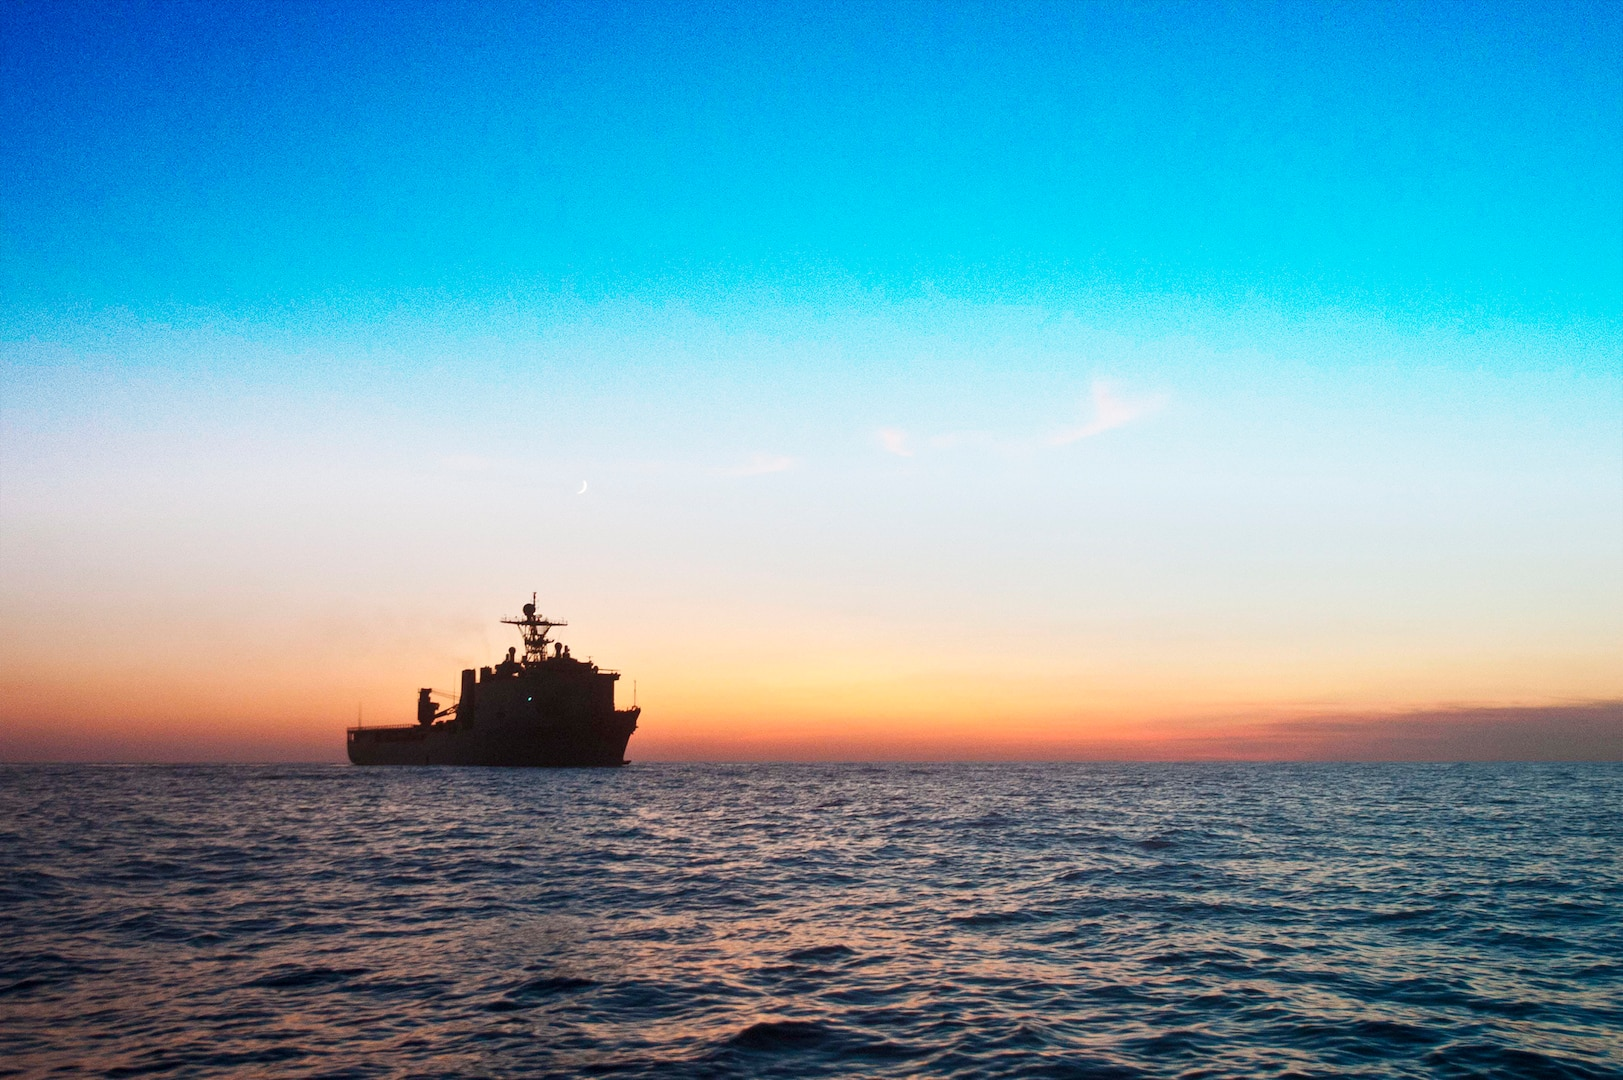 Image of ocean view at sunset on the horizon with USS Fort McHenry in the distance.